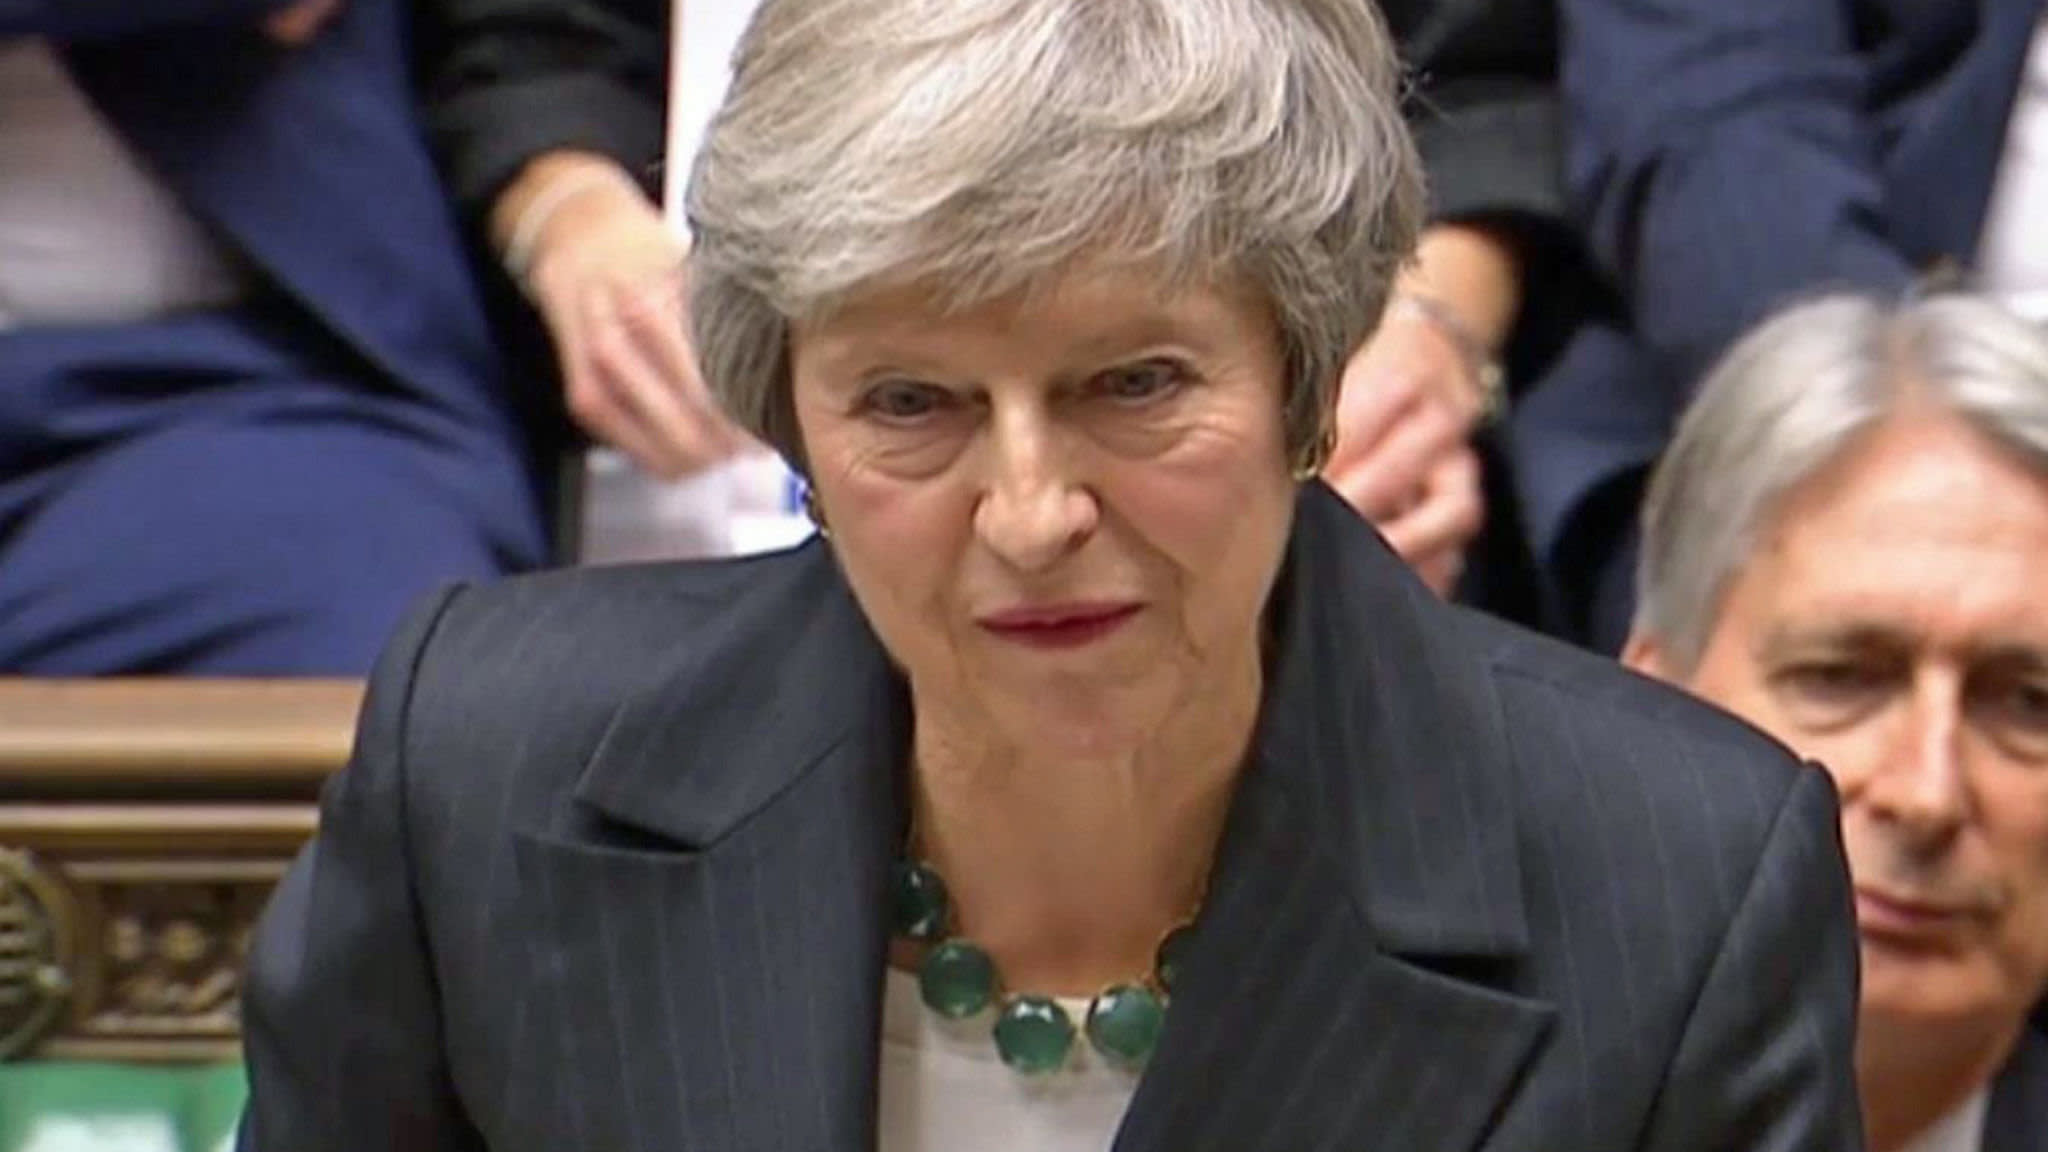 How Theresa May's leadership was engulfed in Brexit crisis